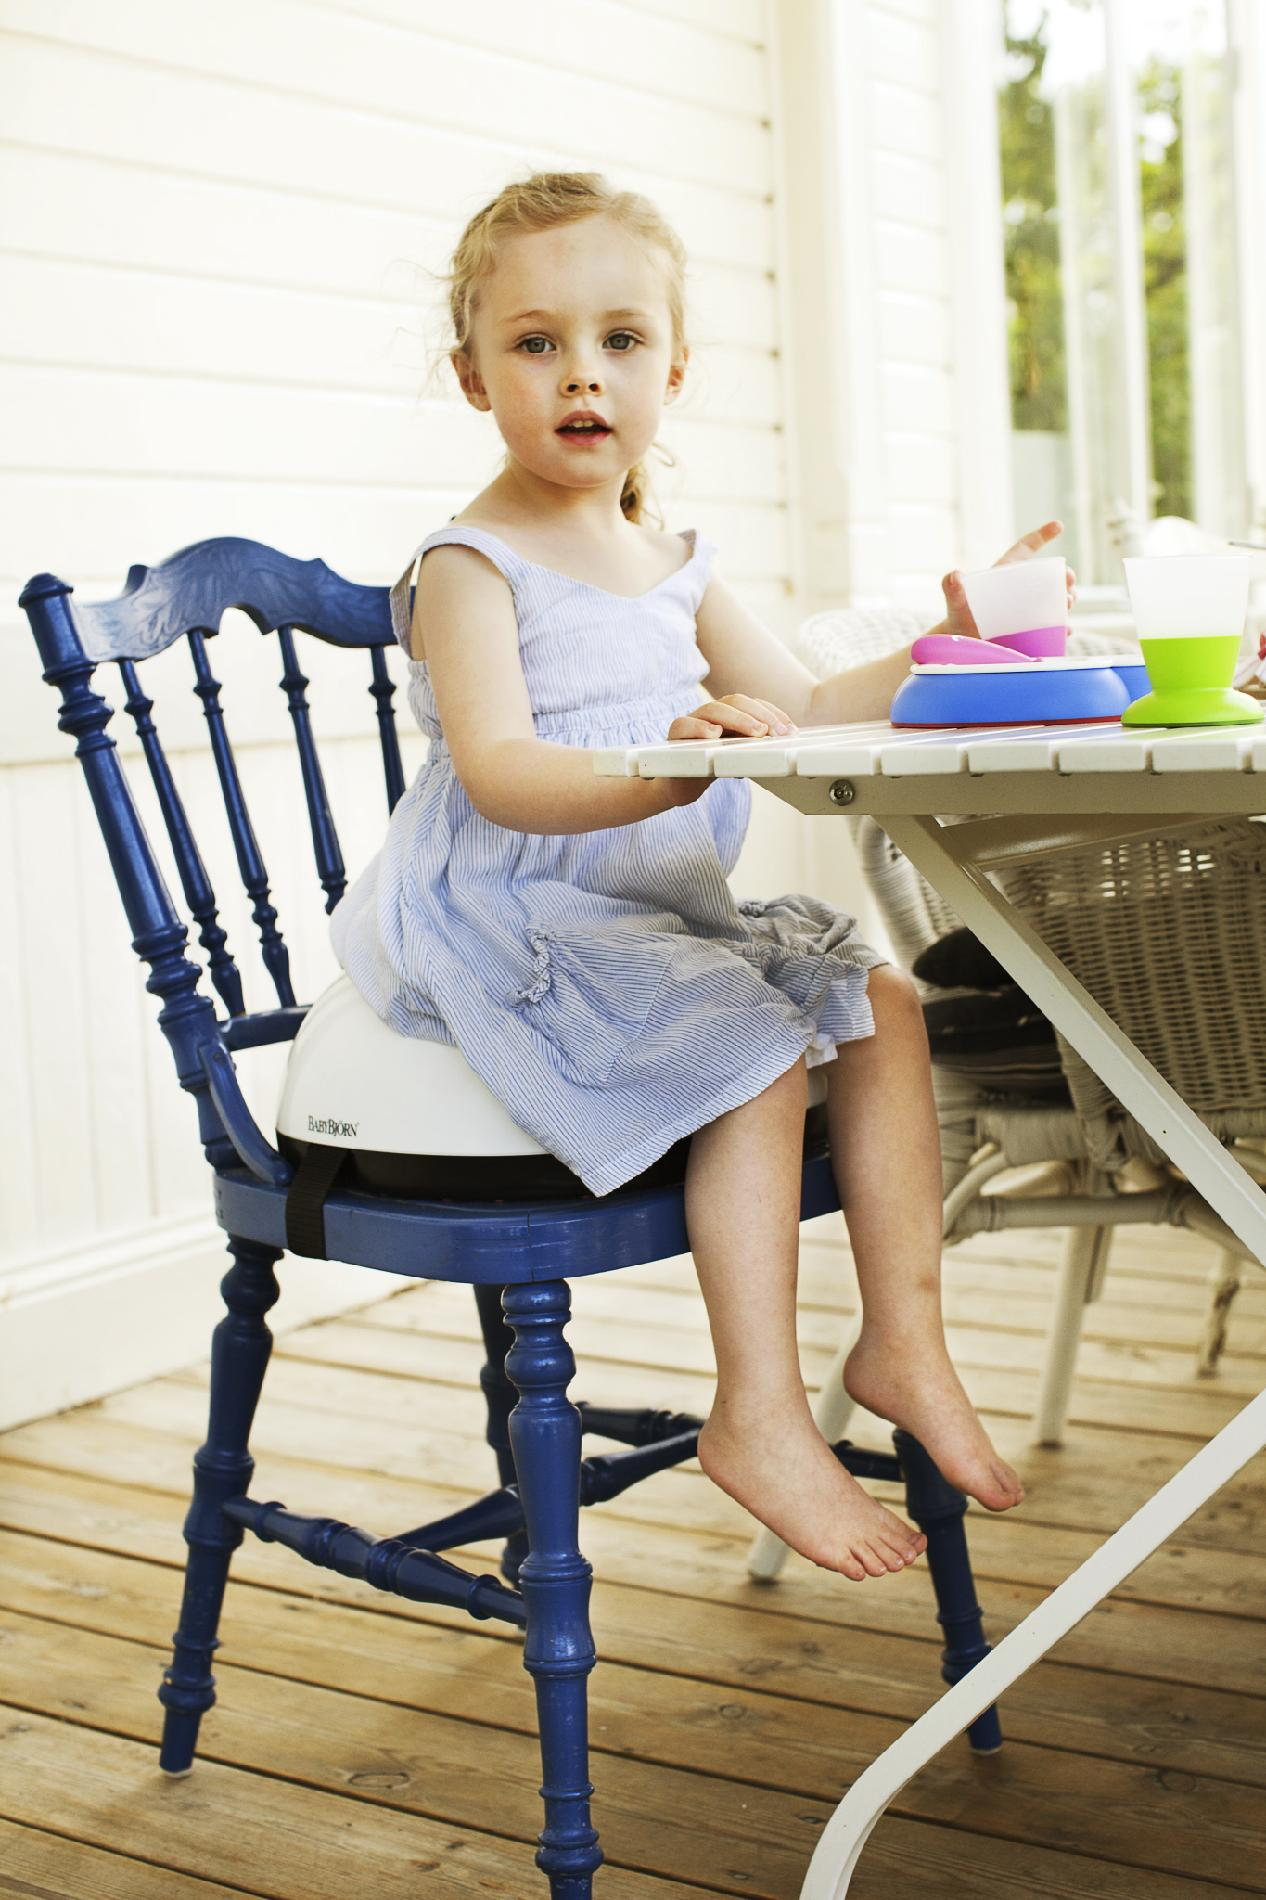 baby bjorn booster chair safety first wooden high babybjorn white gear chairs 2